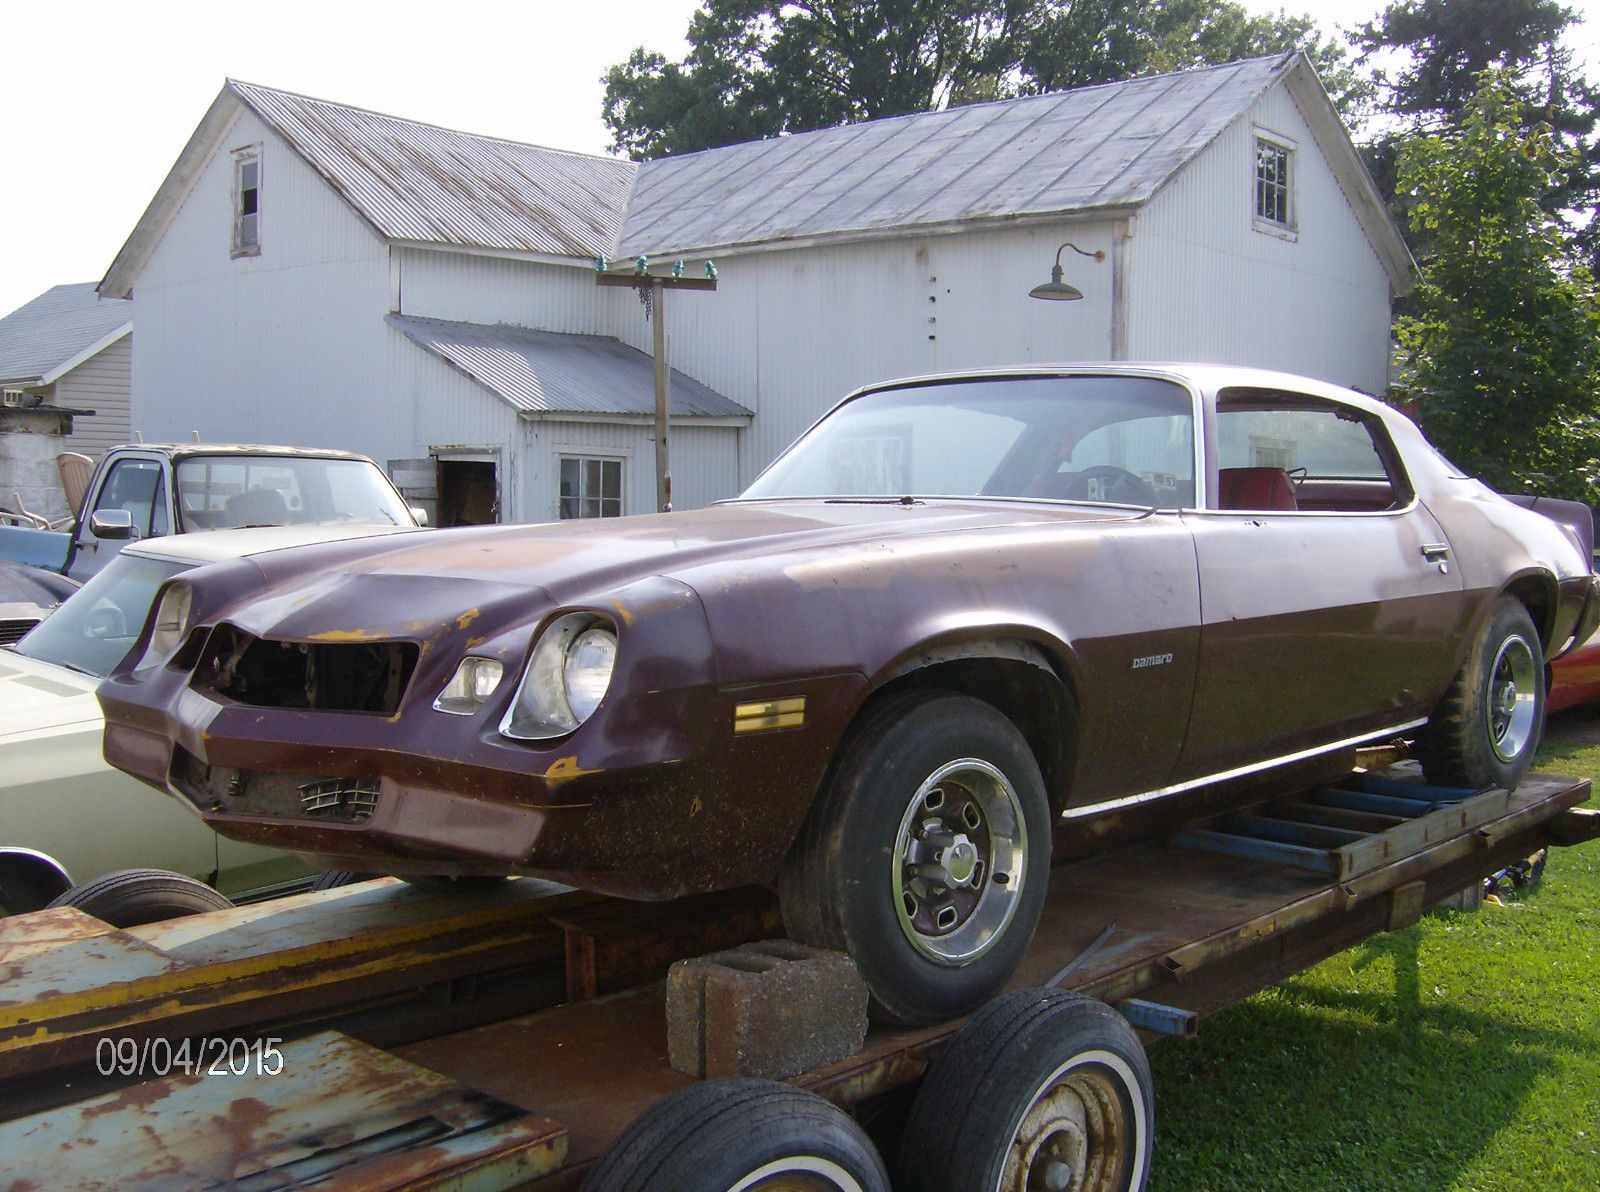 1981 Chevrolet Camaro Sport Coupe Rolling Project car   Project ...